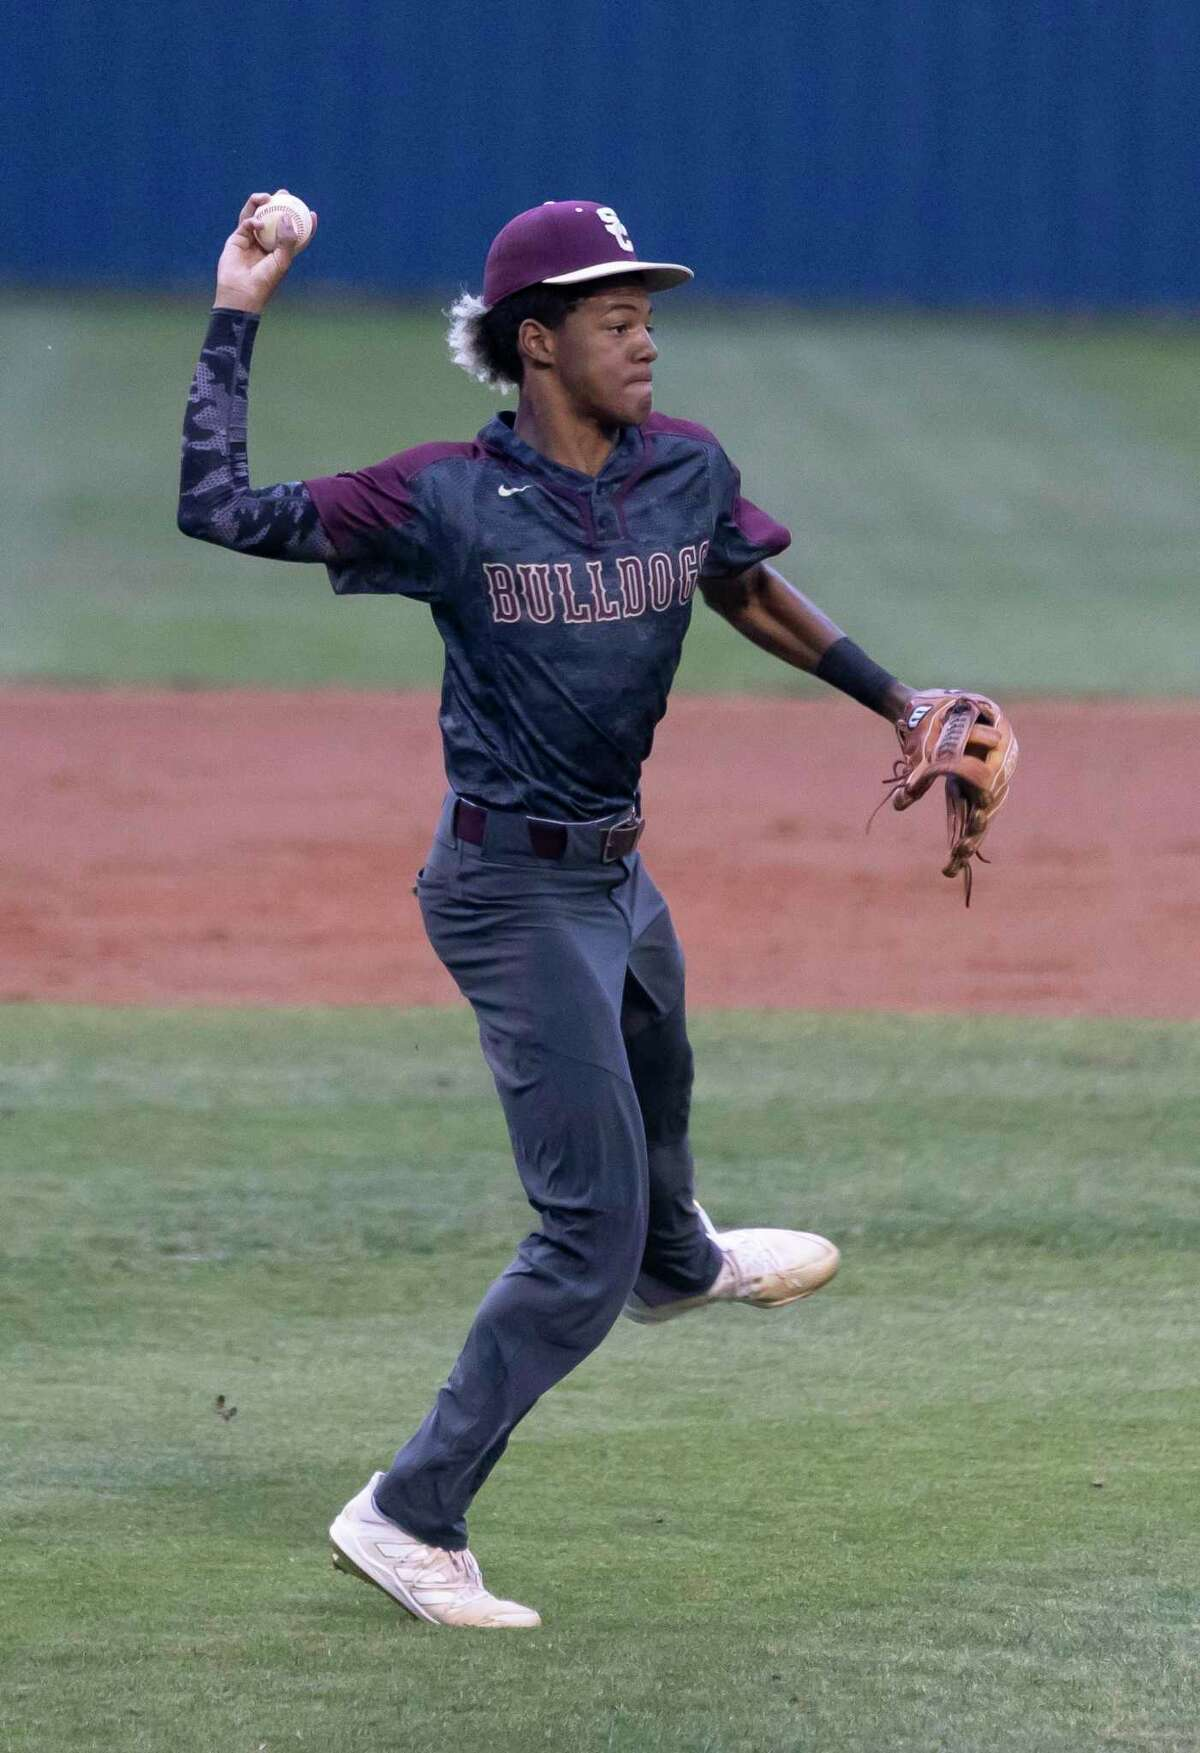 Summer Creek third baseman Ahmar Donatto (2) throws the ball toward first base during the first inning of a District 21-6A baseball game at Kingwood High School, Tuesday, April 27, 2021, in Kingwood.